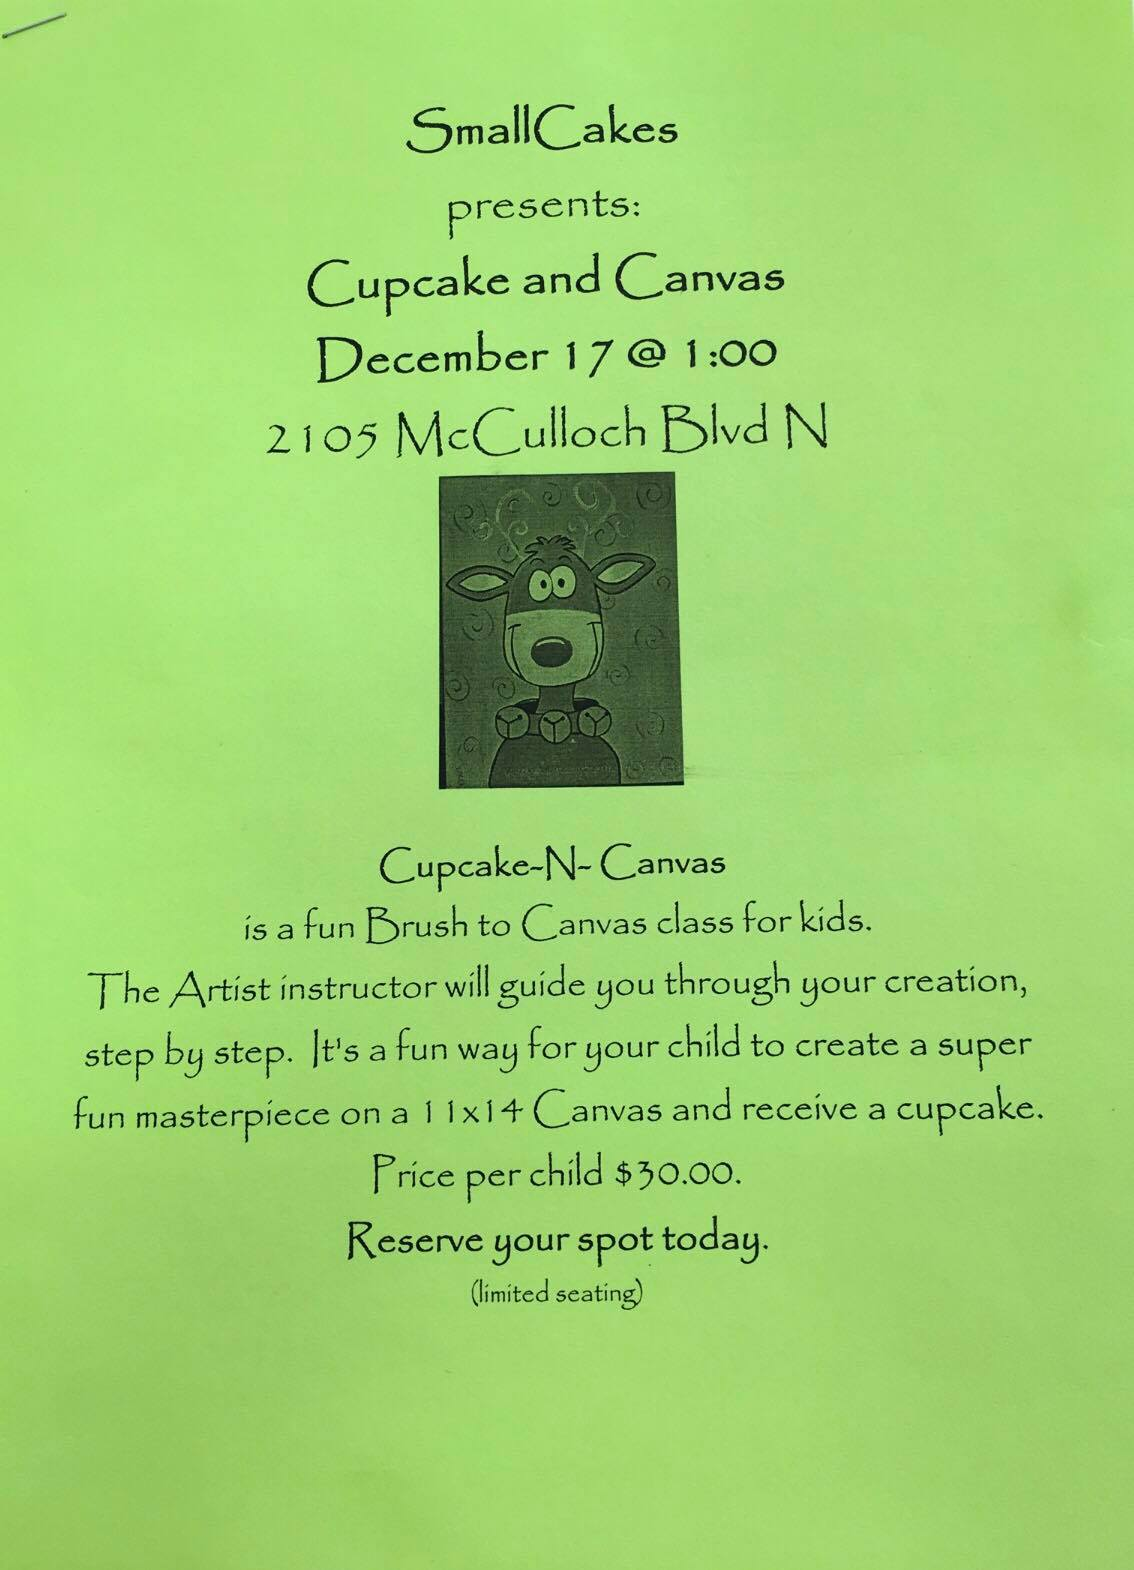 Cupcakes and canvas!